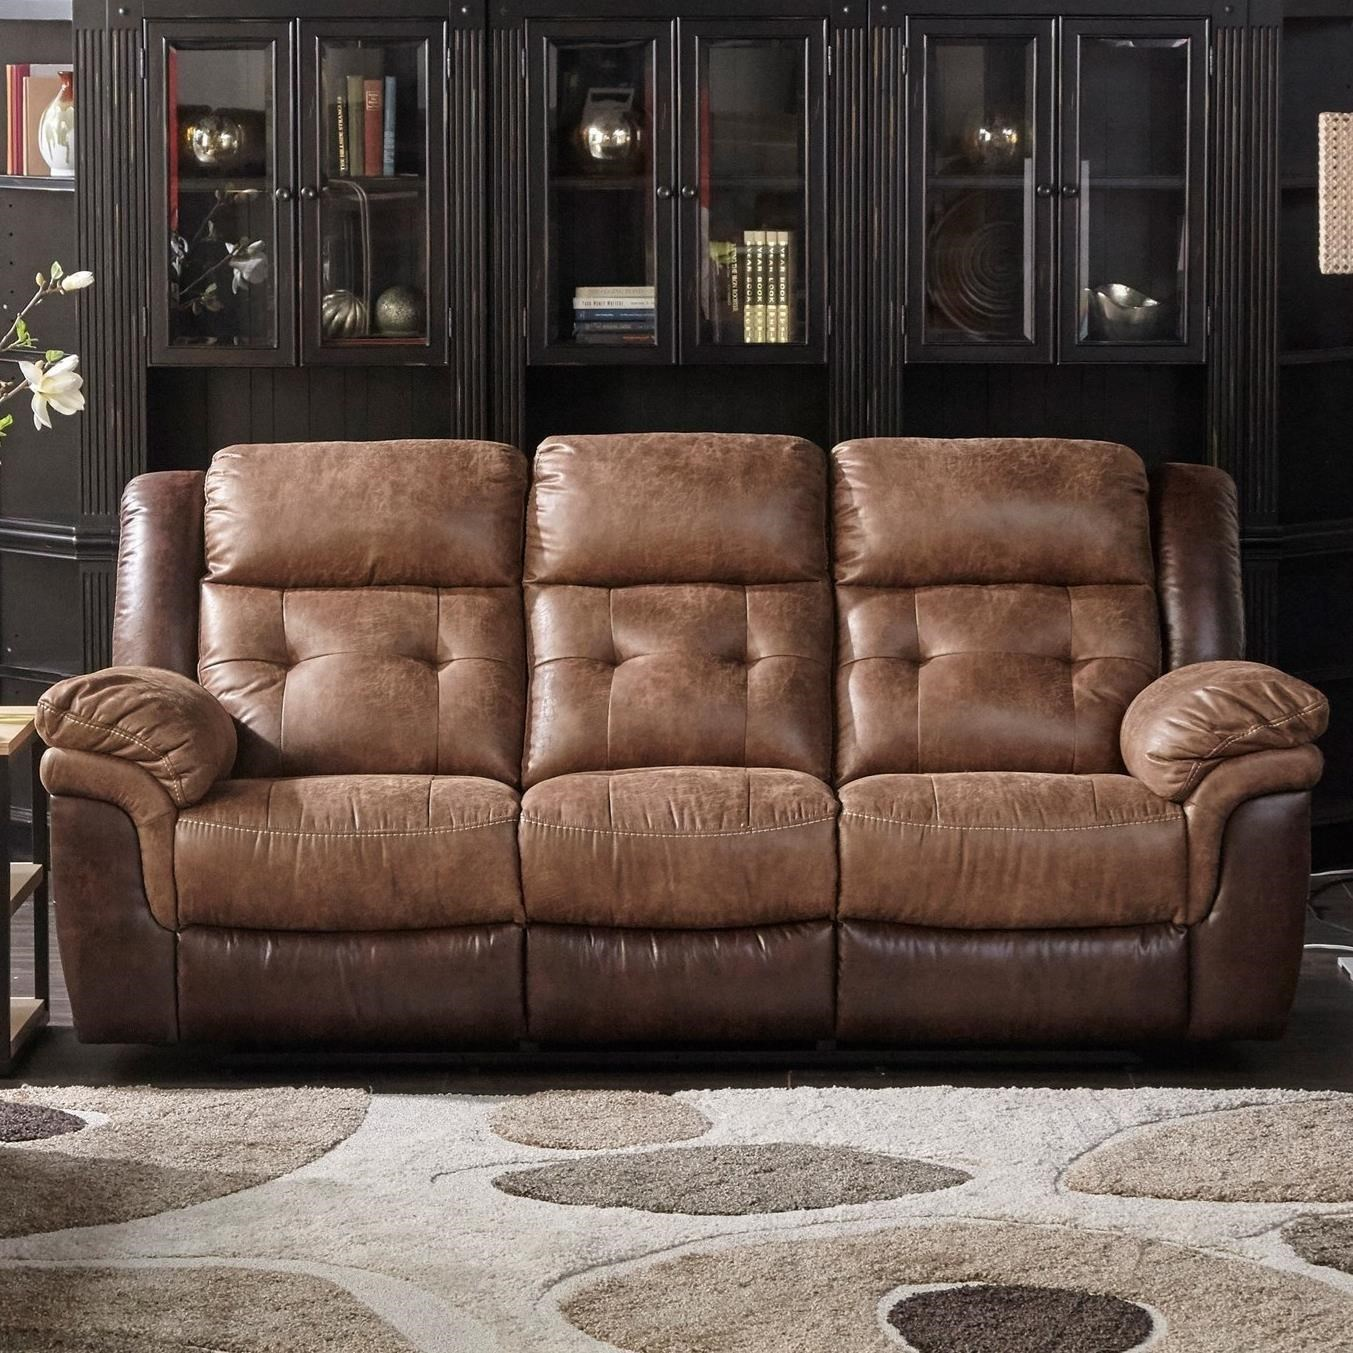 Cheers Sofa Houston Chee Xw5156m L3 2m 31827 31828 Dual